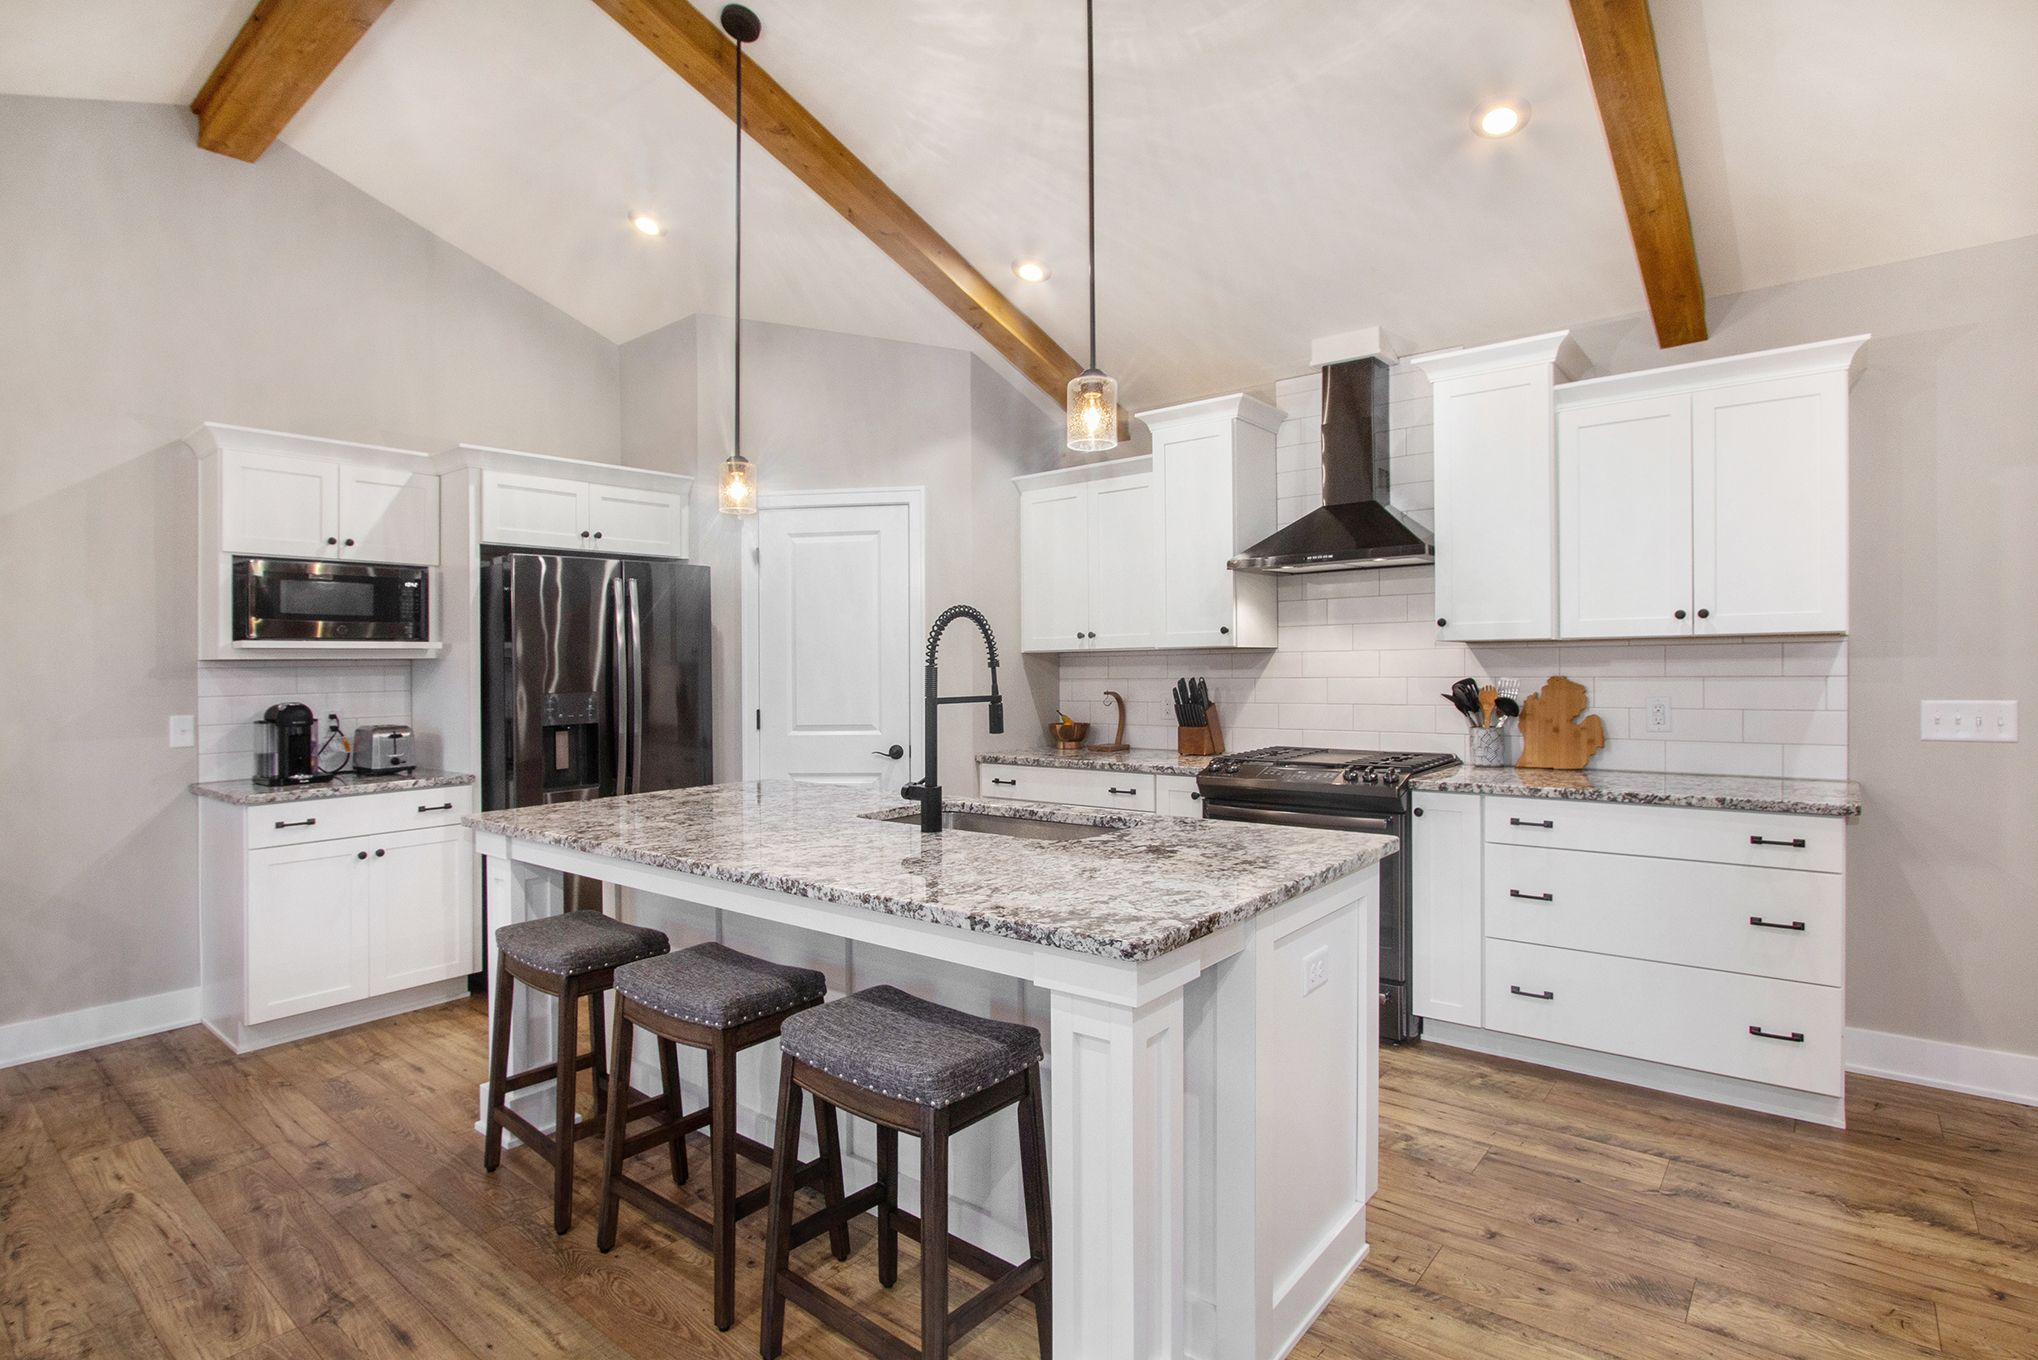 Kitchen featured in The Georgetown By Eastbrook Homes Inc. in Lansing, MI